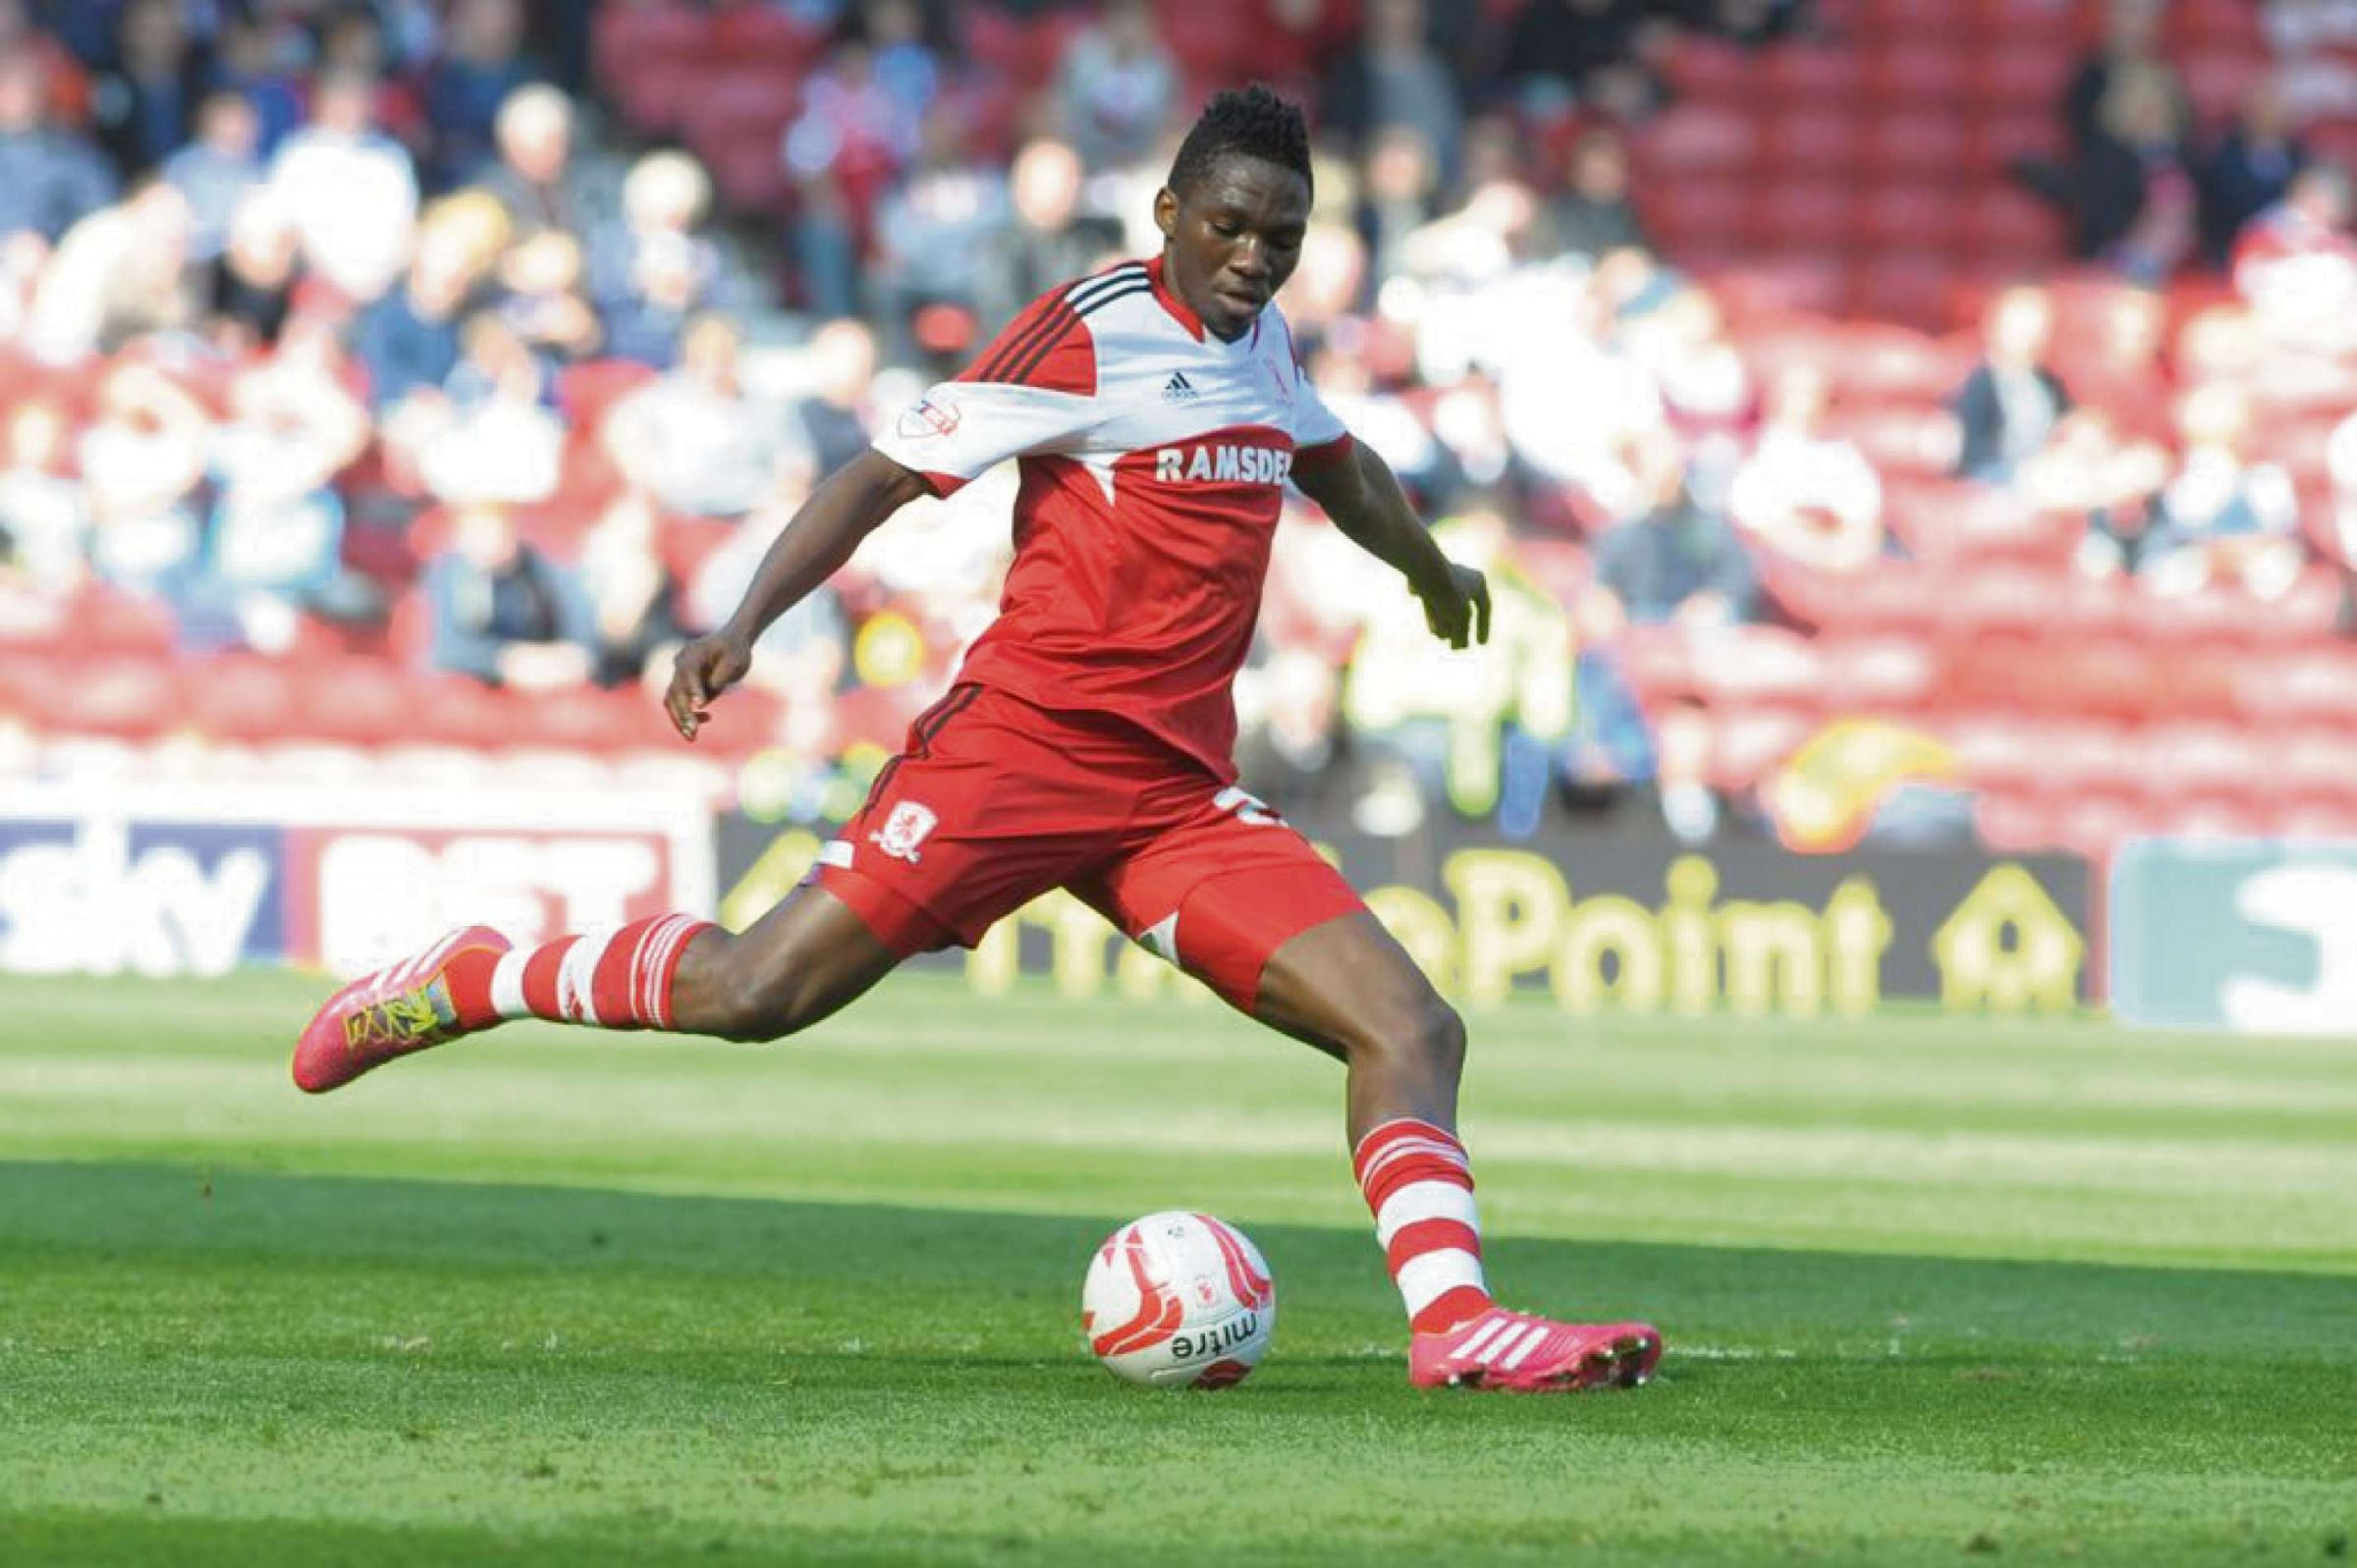 BACK AT BORO: Kenneth Omeruo has re-signed for Middlesbrough on a season-long loan